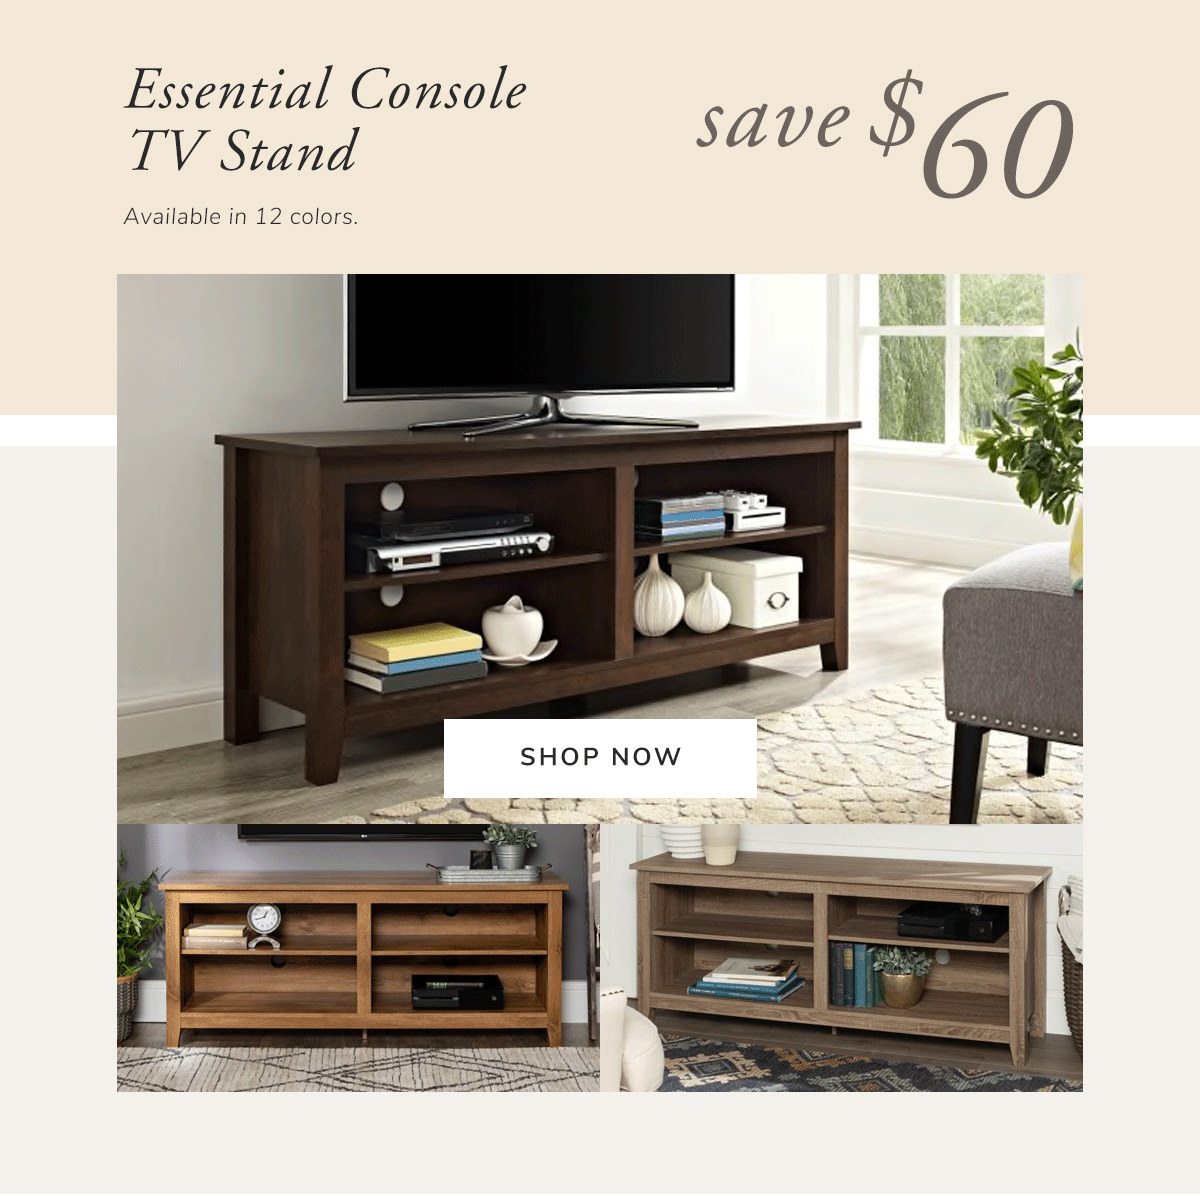 Essential Console TV Stand. Save $60 | SHOP NOW